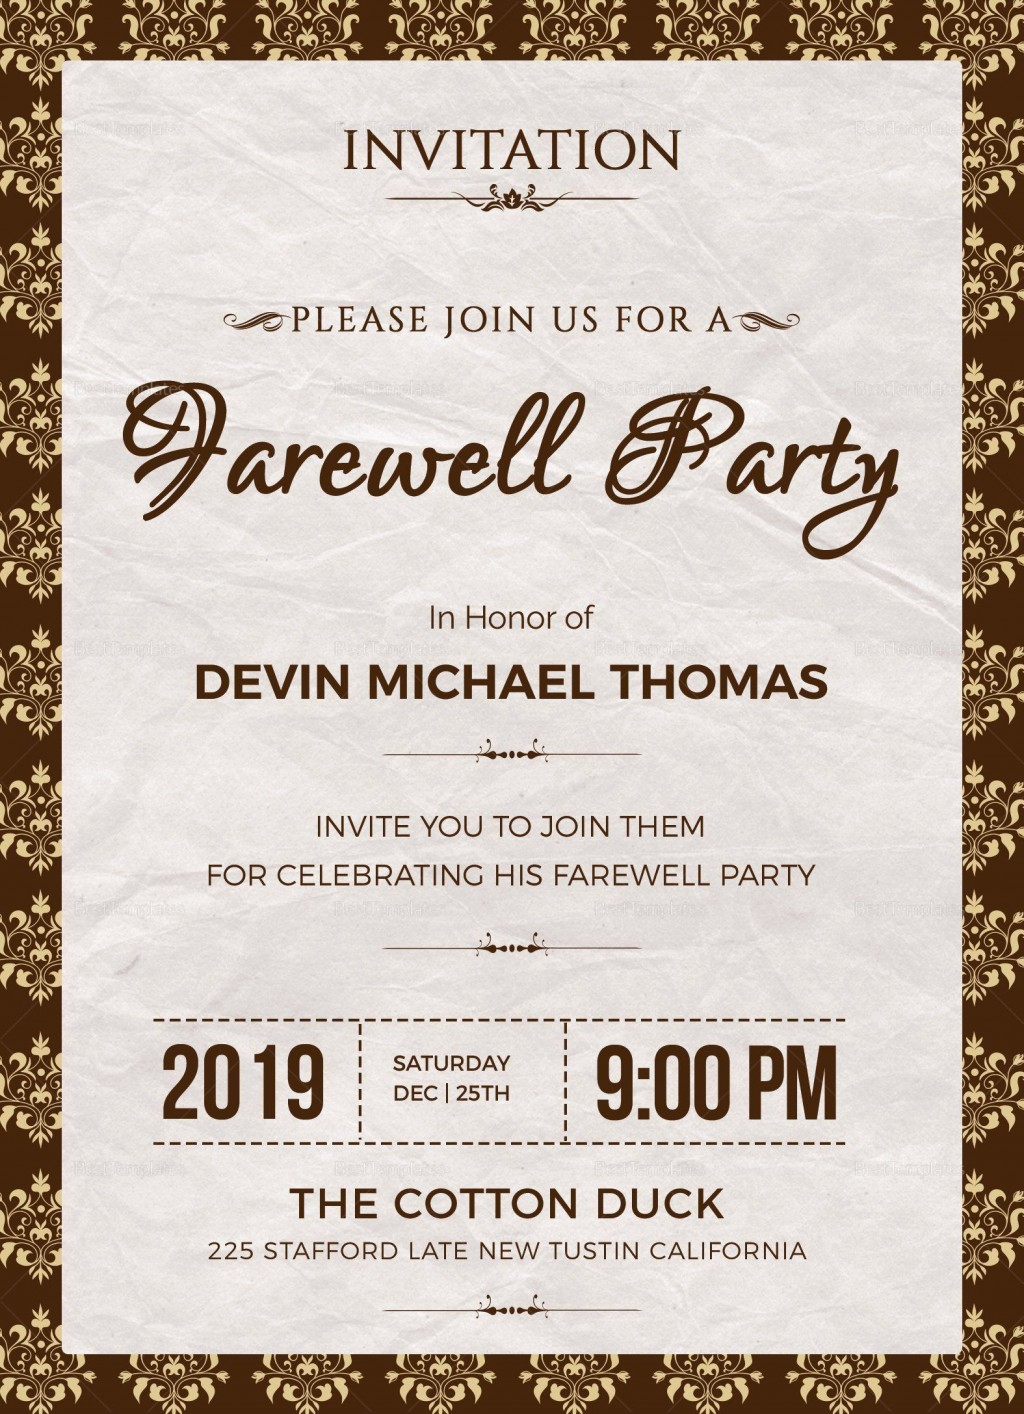 003 Exceptional Farewell Party Invitation Template Free High Definition  Email Printable WordLarge